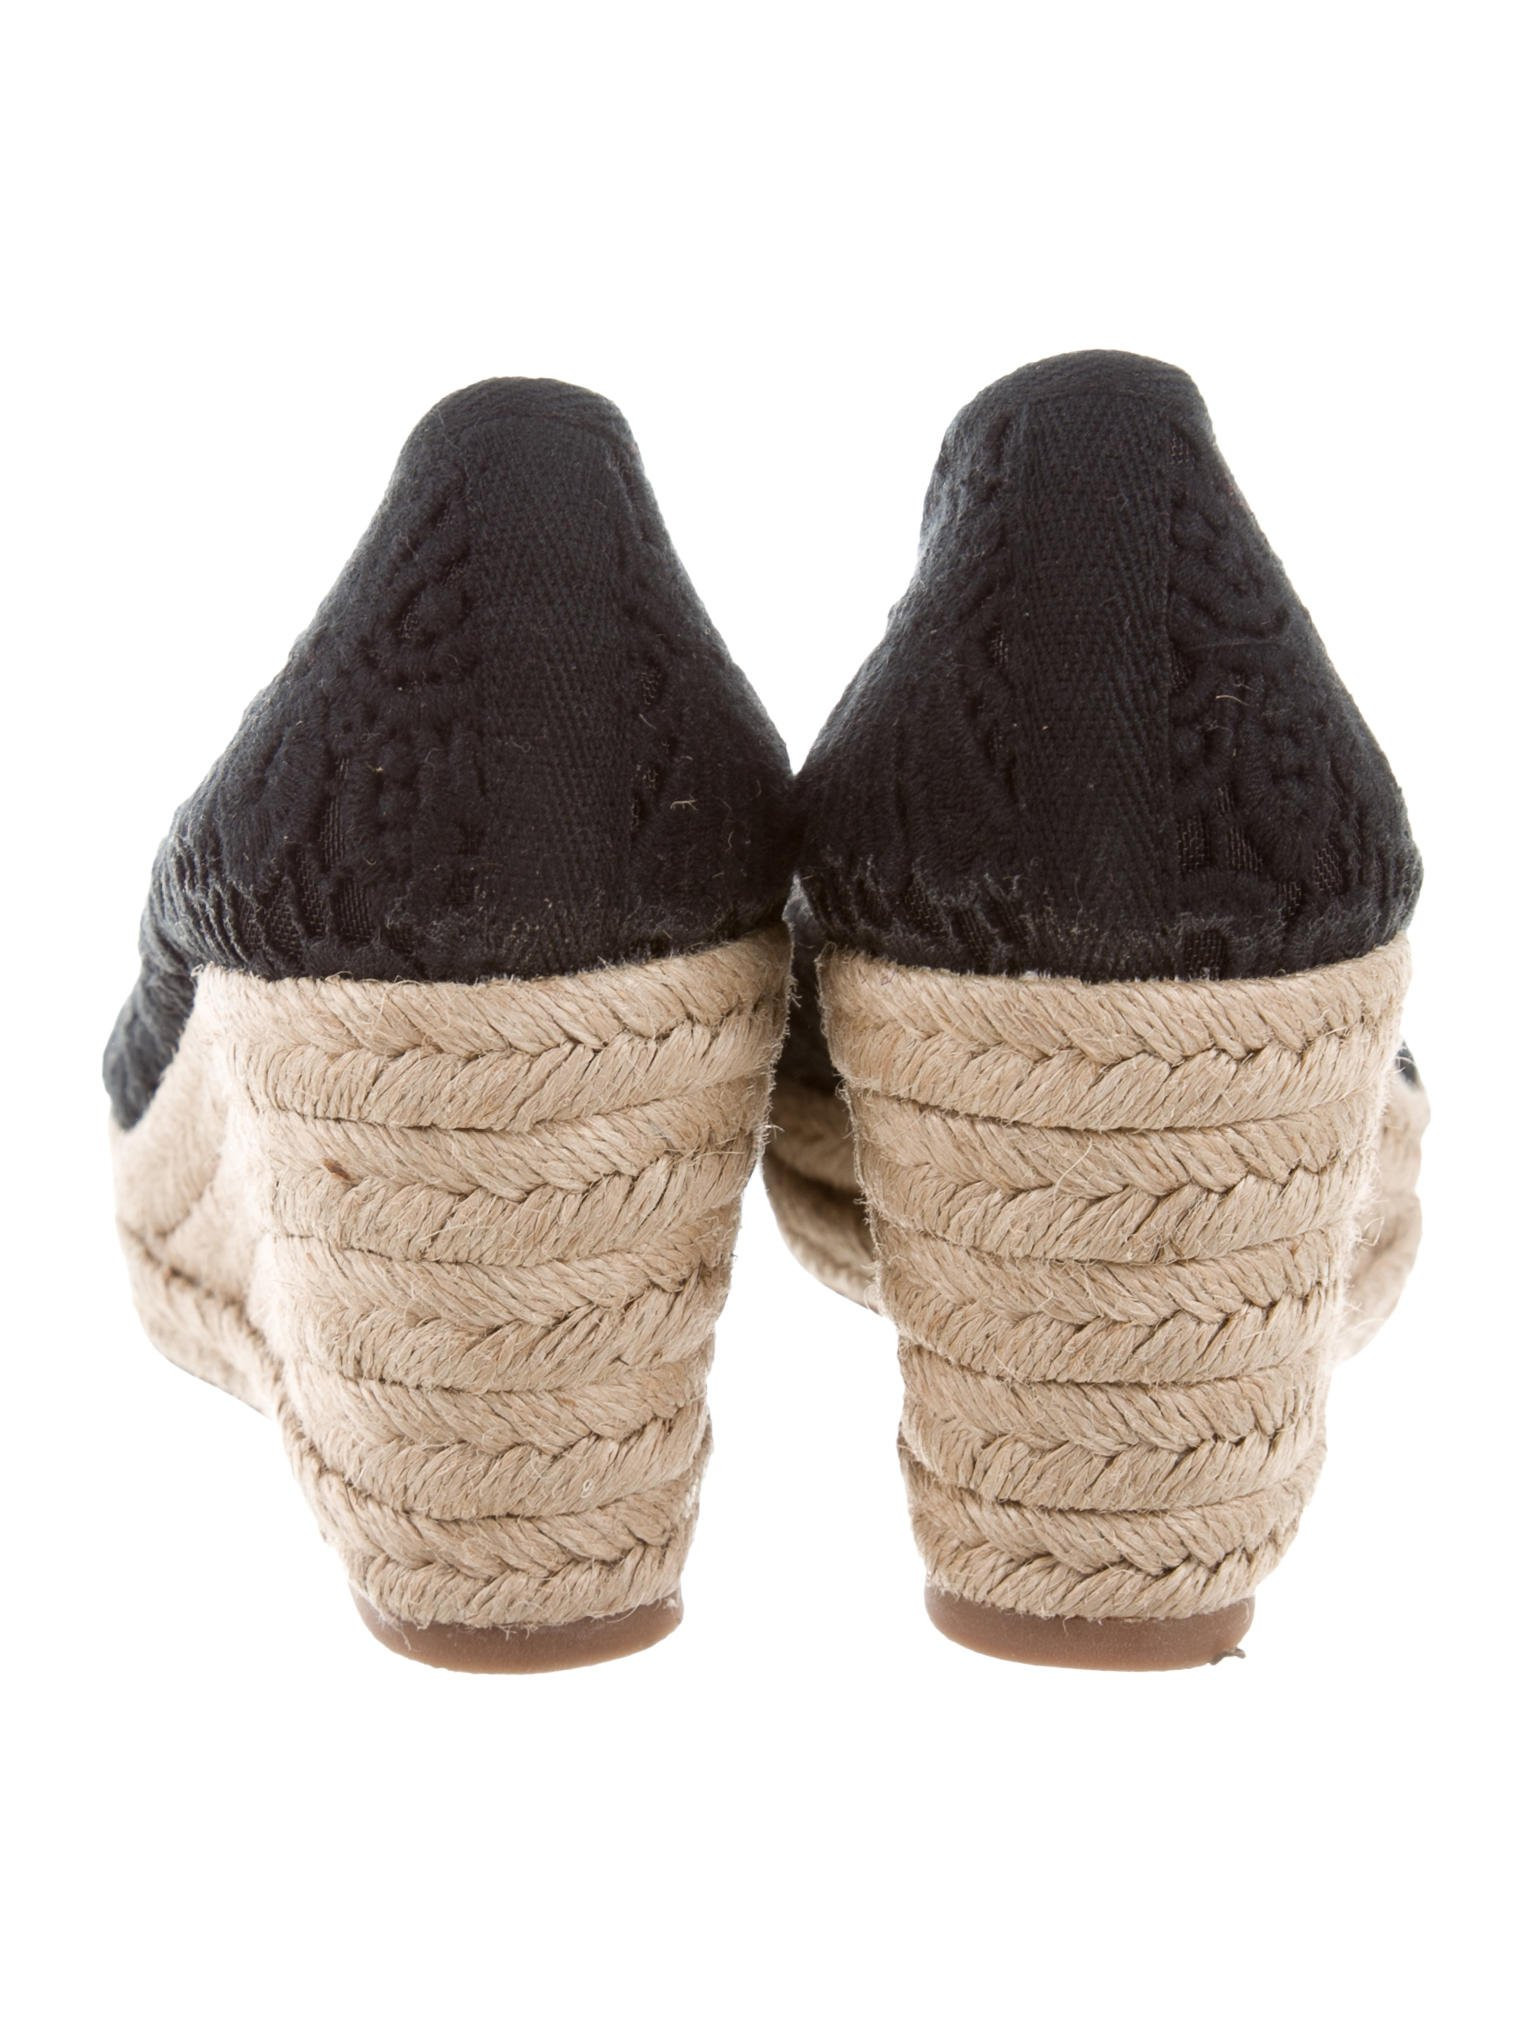 Awesome tory Burch Crochet Espadrille Wedges Shoes Wto Crochet Wedges Of Marvelous 44 Ideas Crochet Wedges